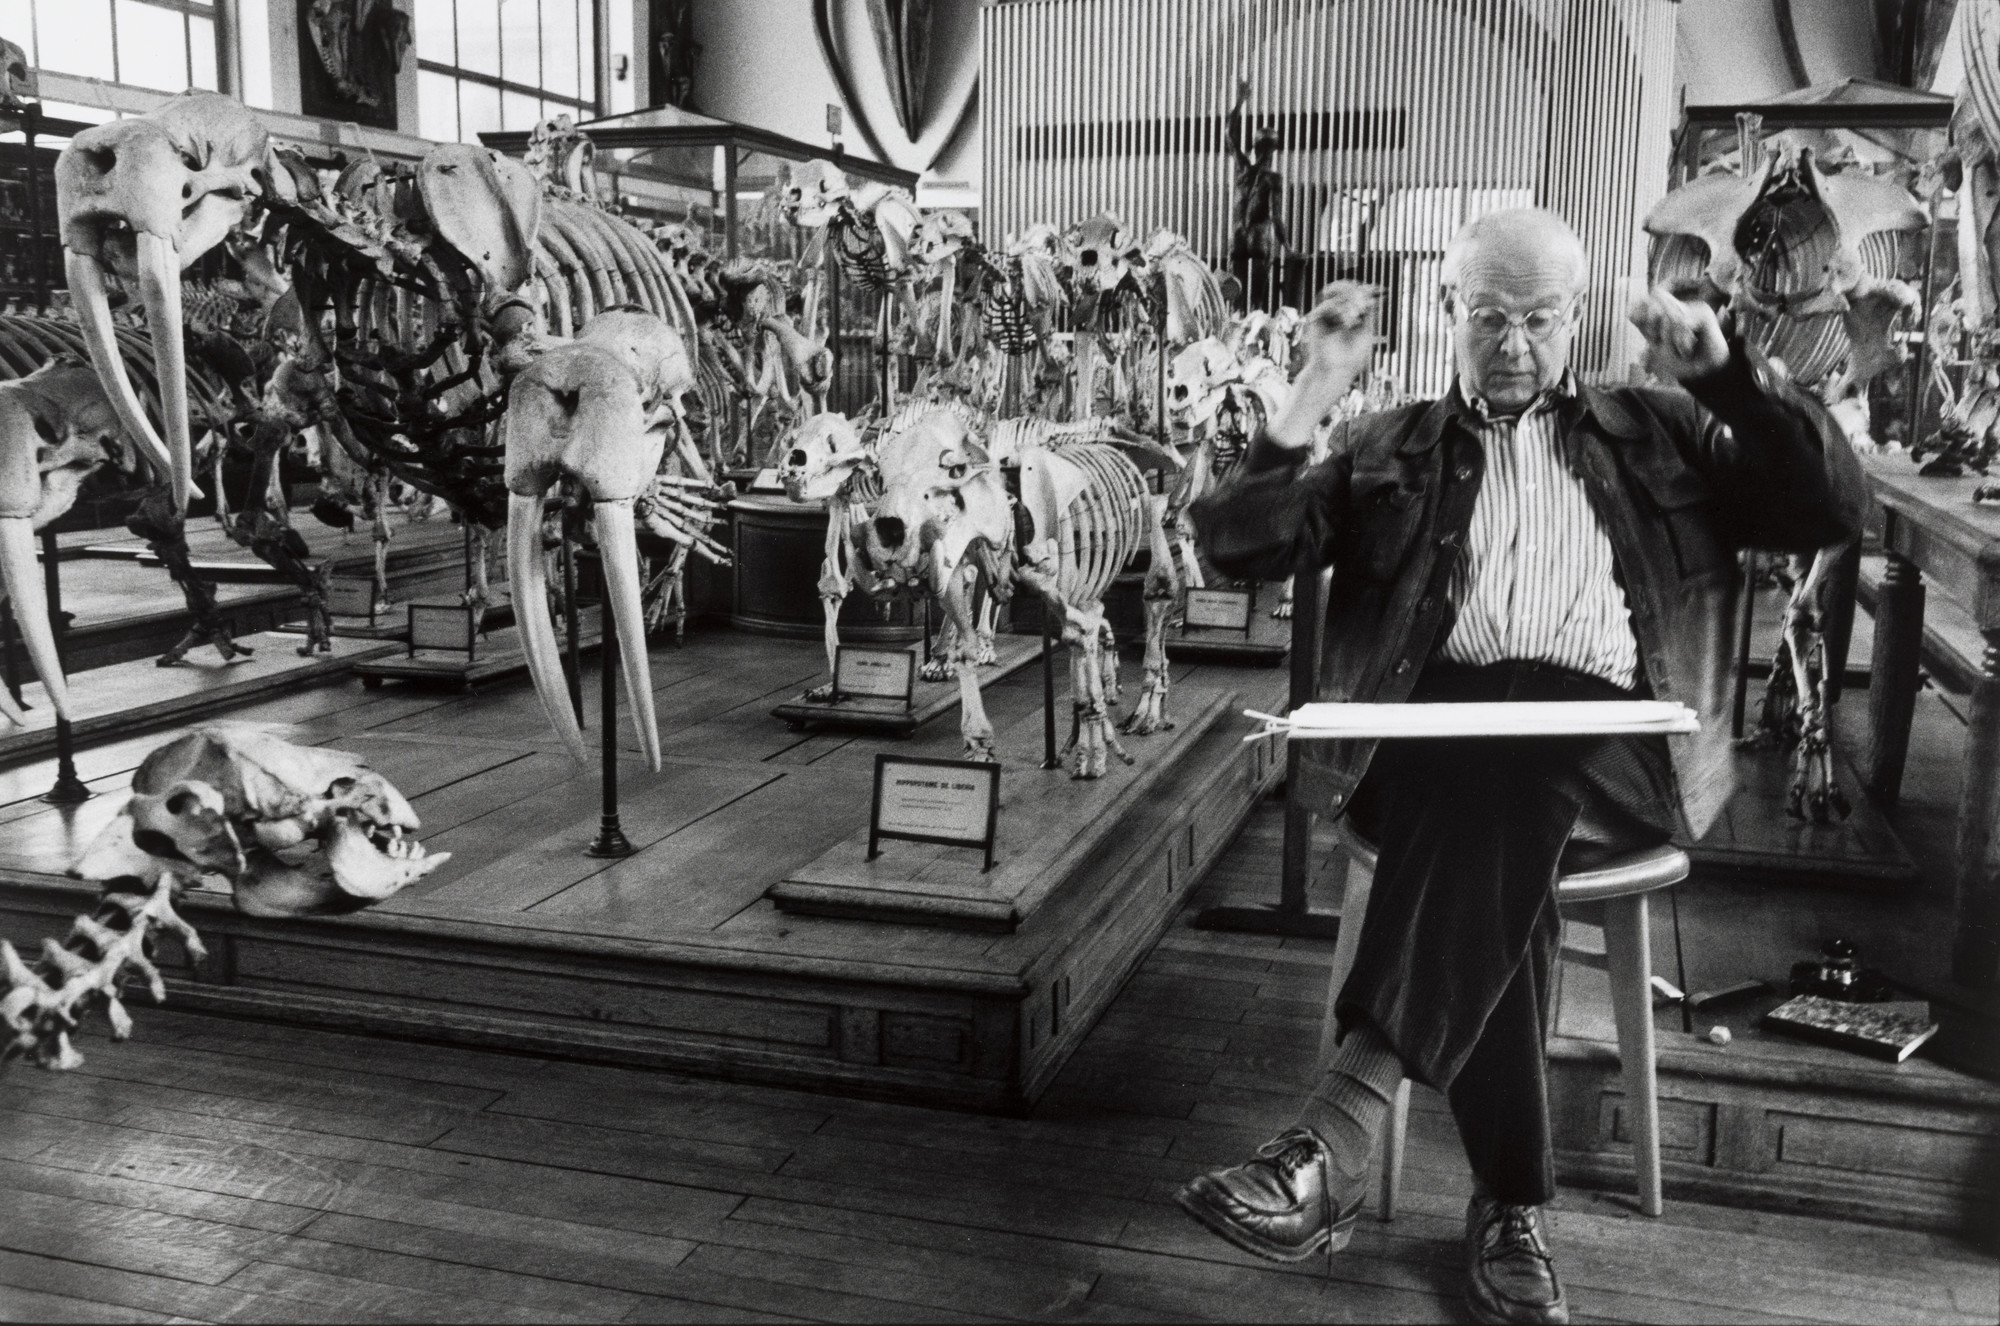 Martine Franck. Henri Cartier-Bresson at the Natural History Museum, Paris. c. 1992